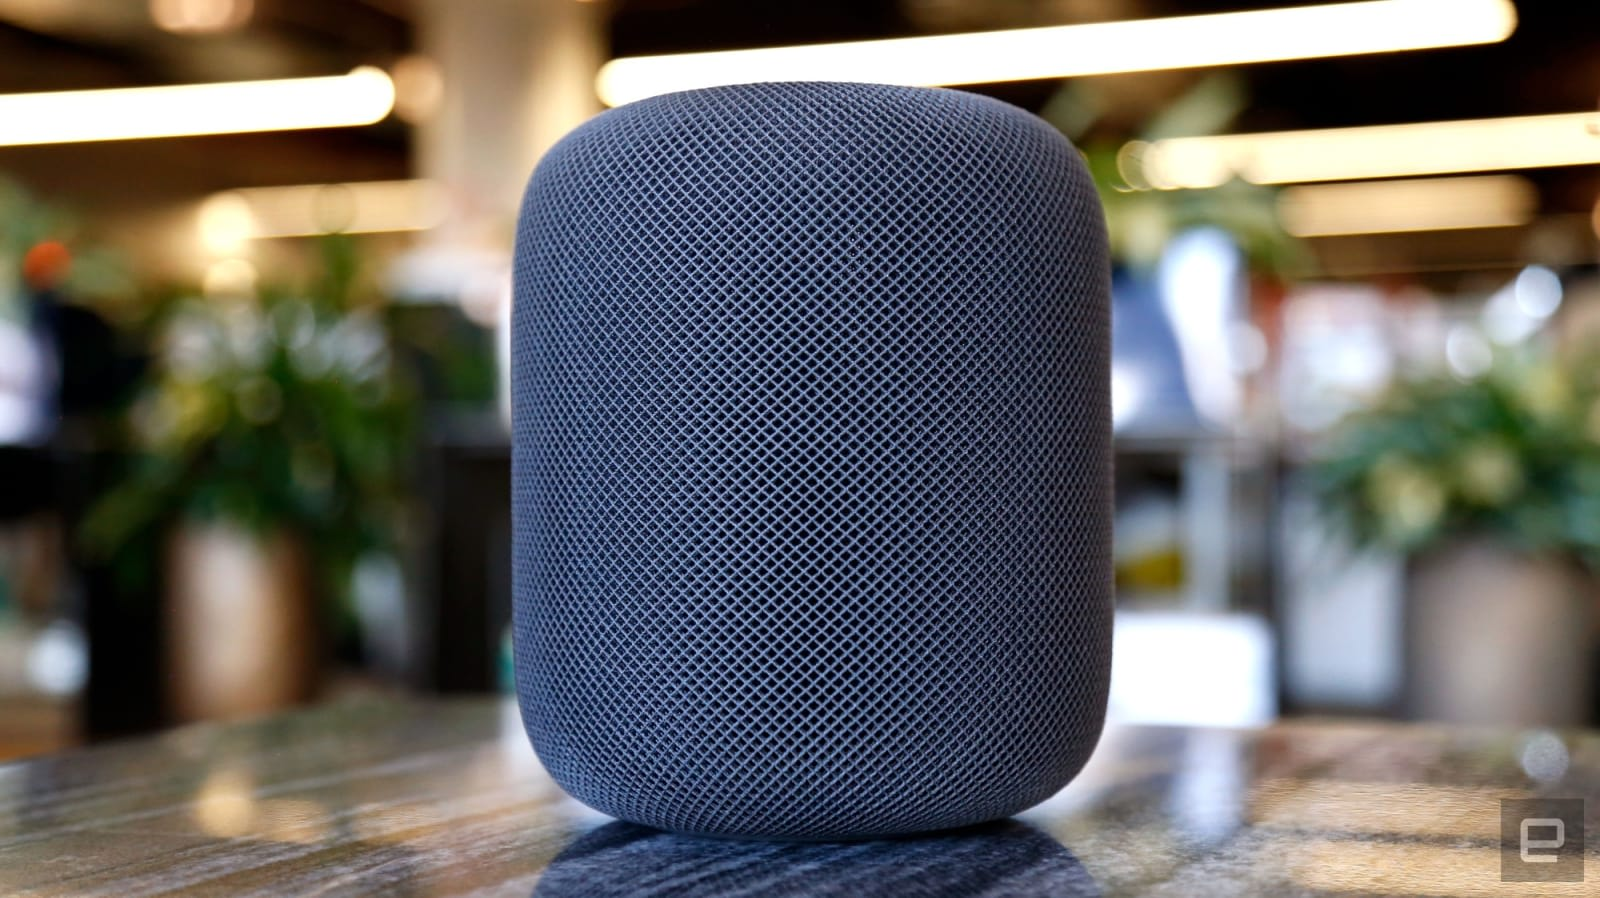 HomePod by Apple cover image